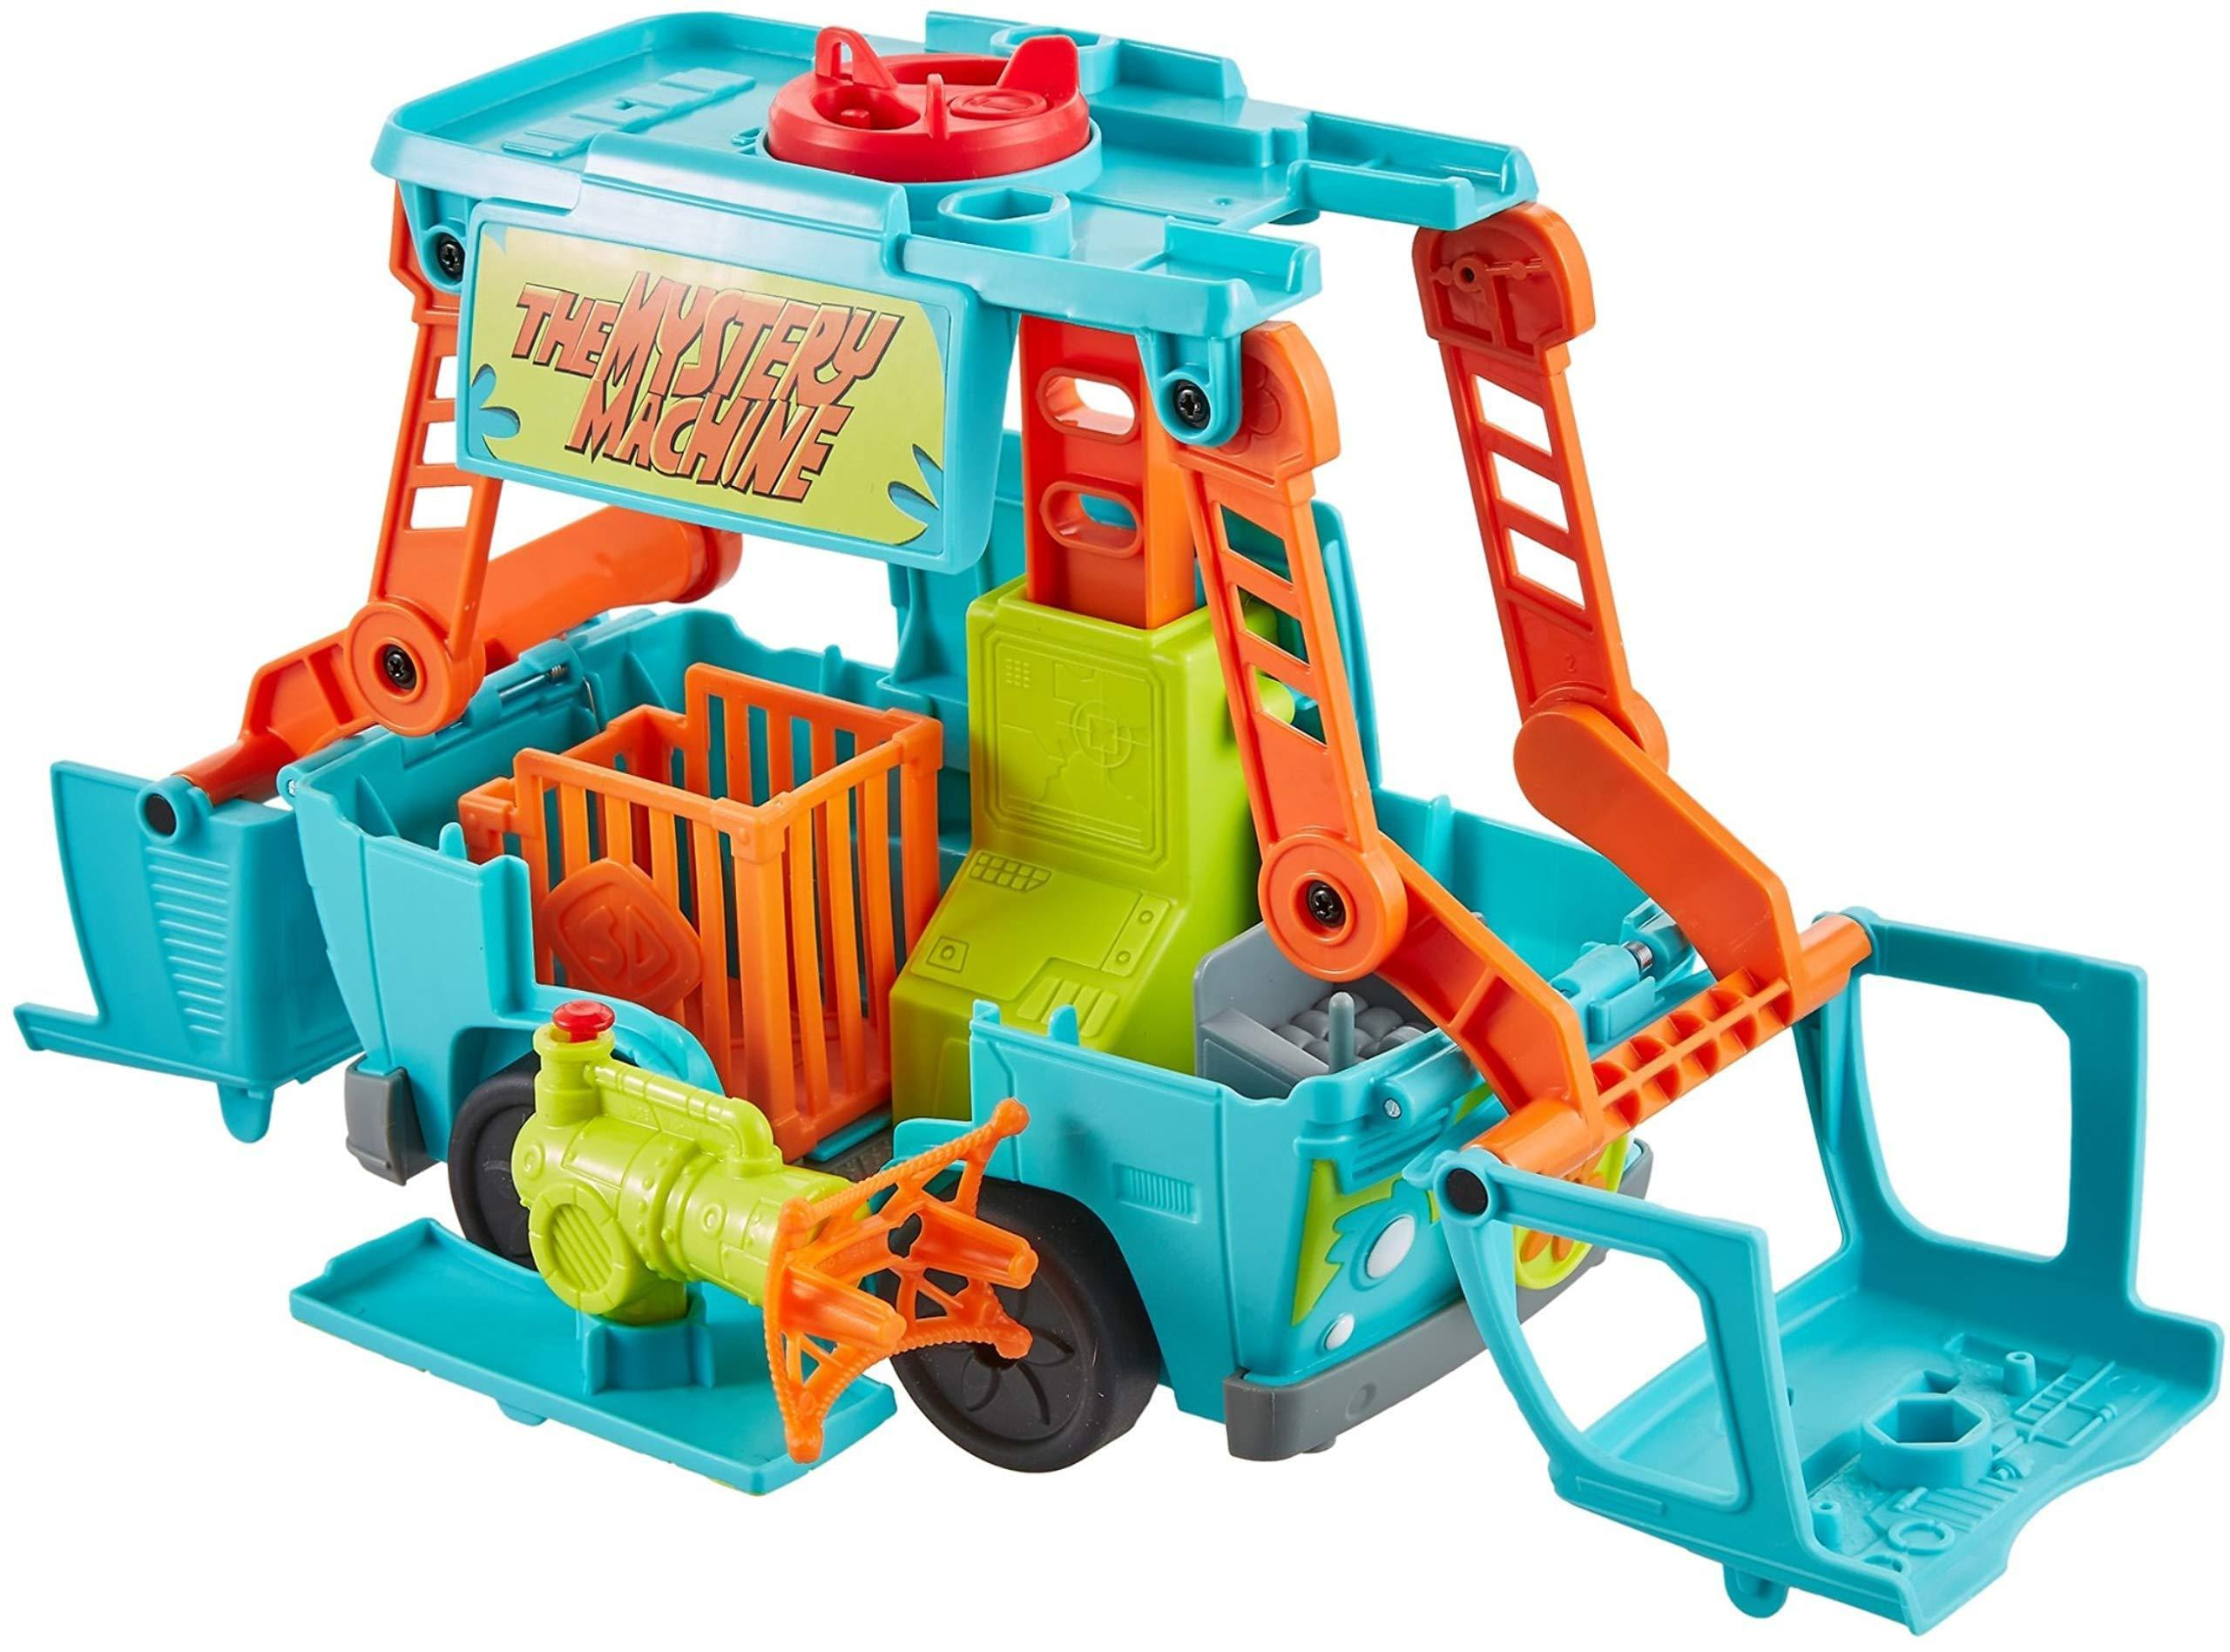 Fisher-Price Imaginext Scooby-Doo Transforming Mystery Machine - wiihuu